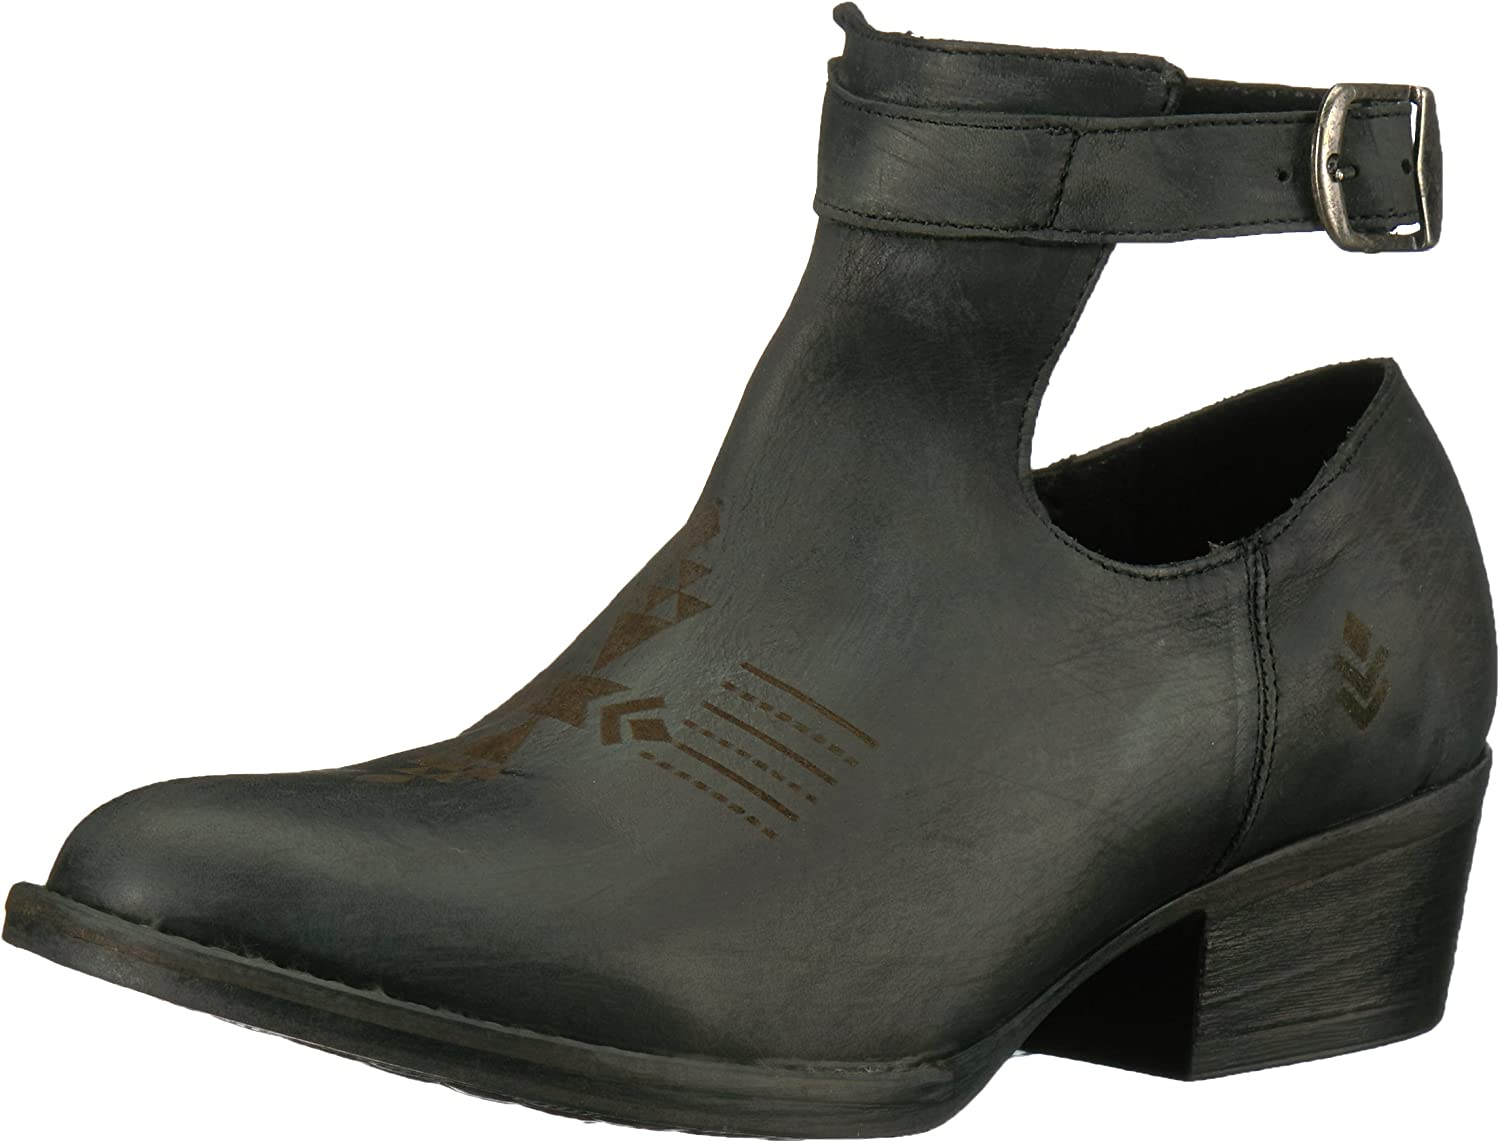 Sbicca Womens Peaceout Ankle Bootie